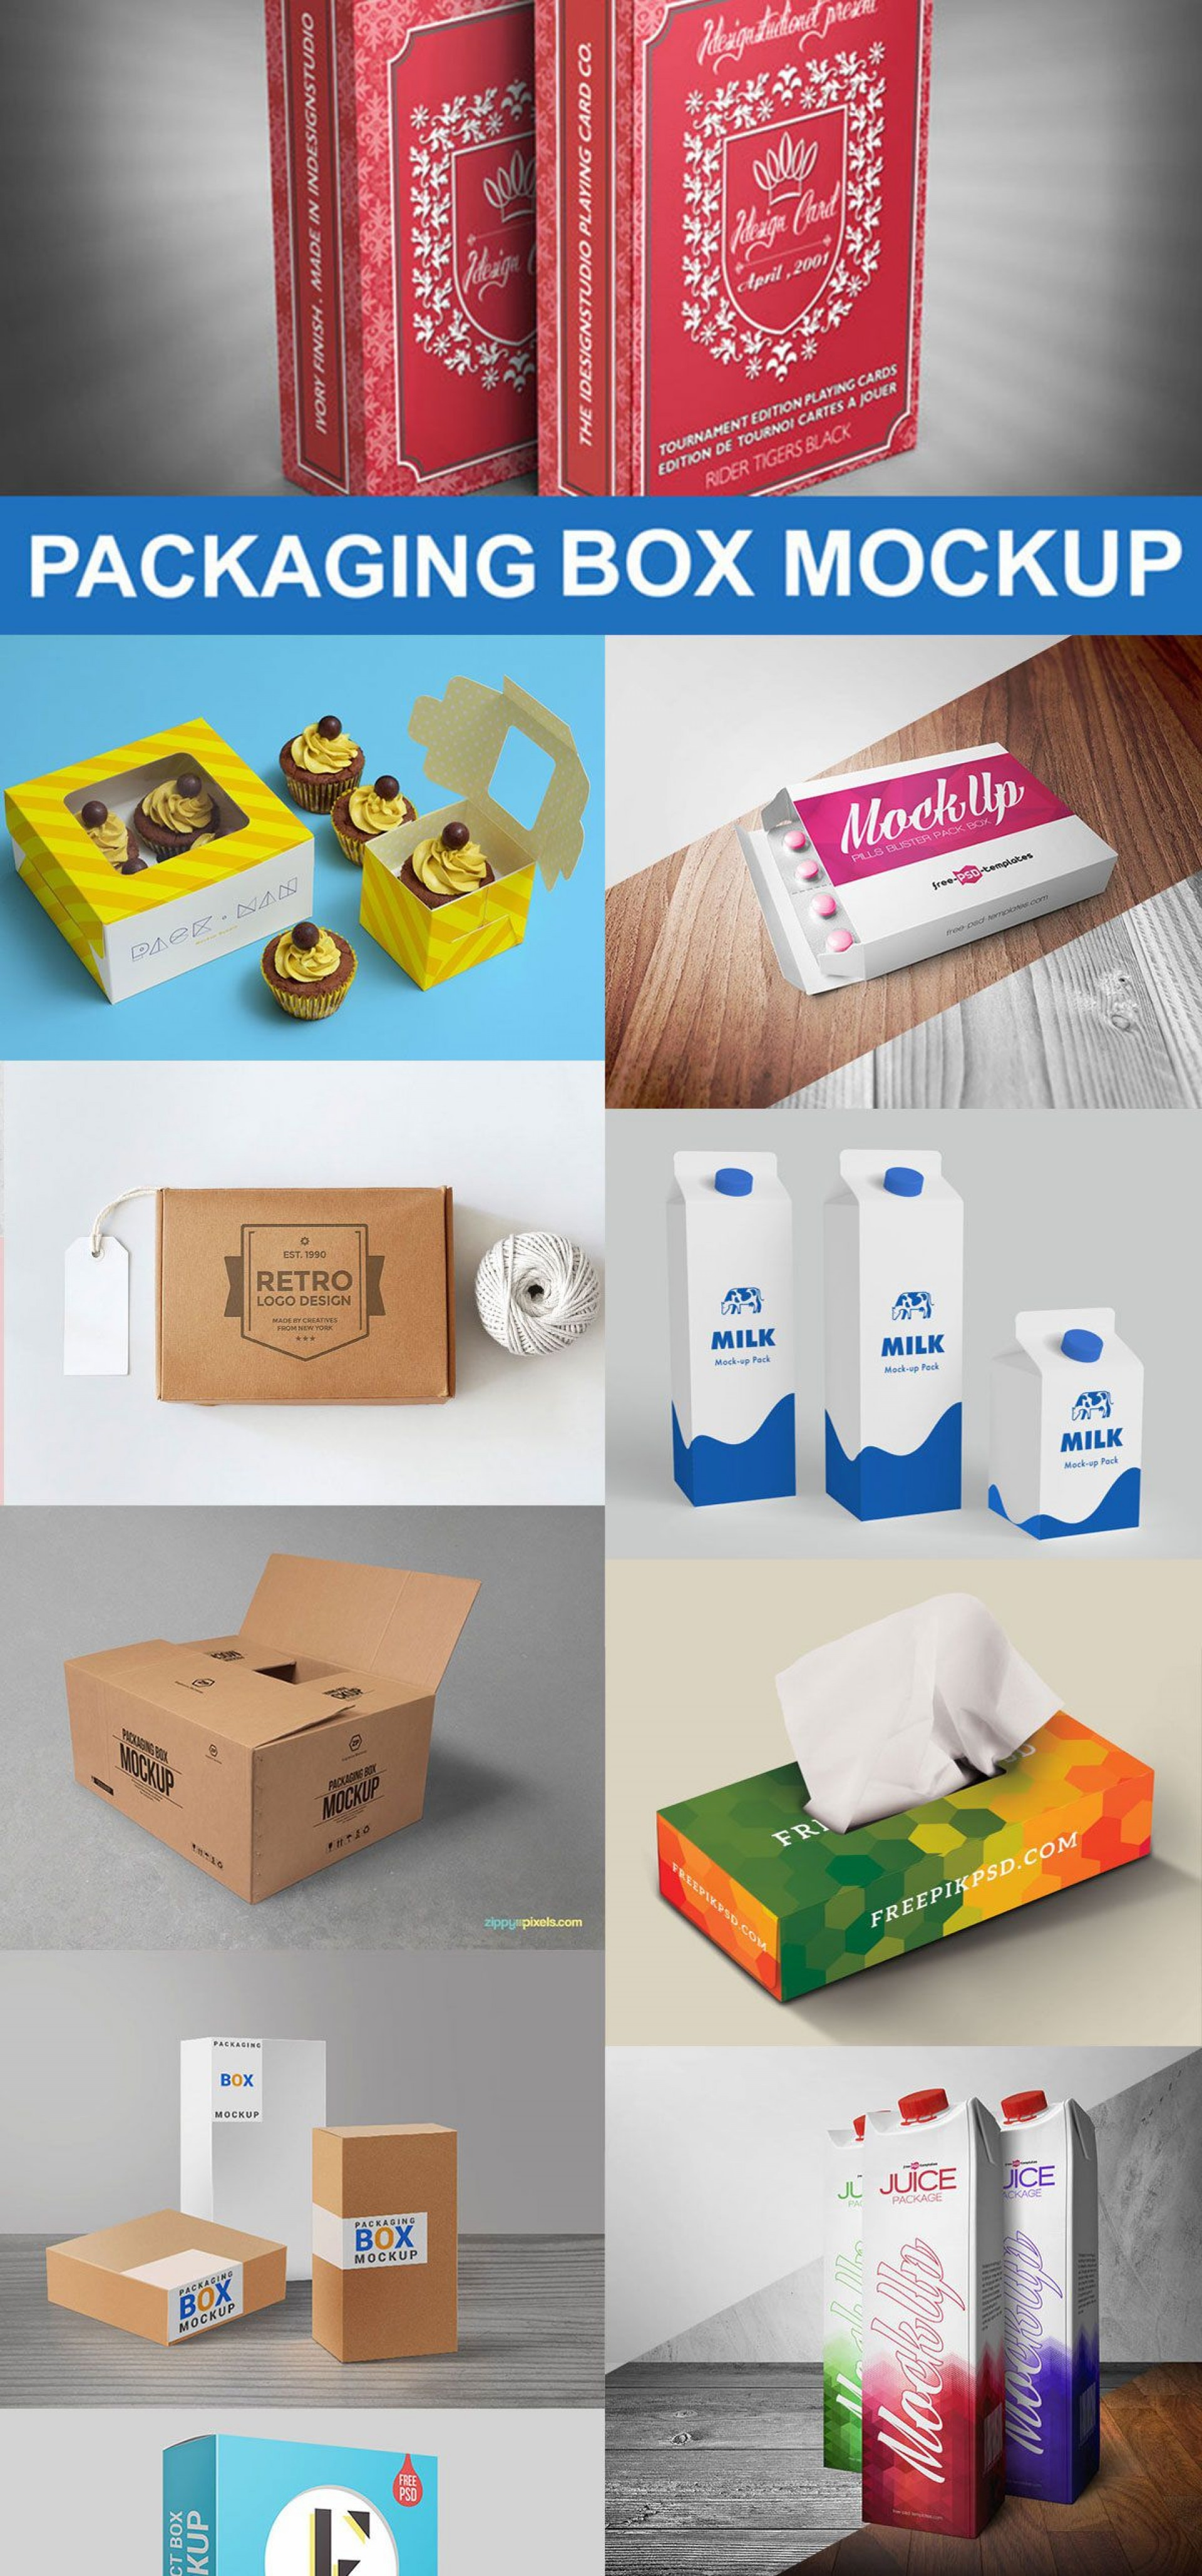 002 Archaicawful Box Design Template Free Highest Clarity  Text Download Packaging1920